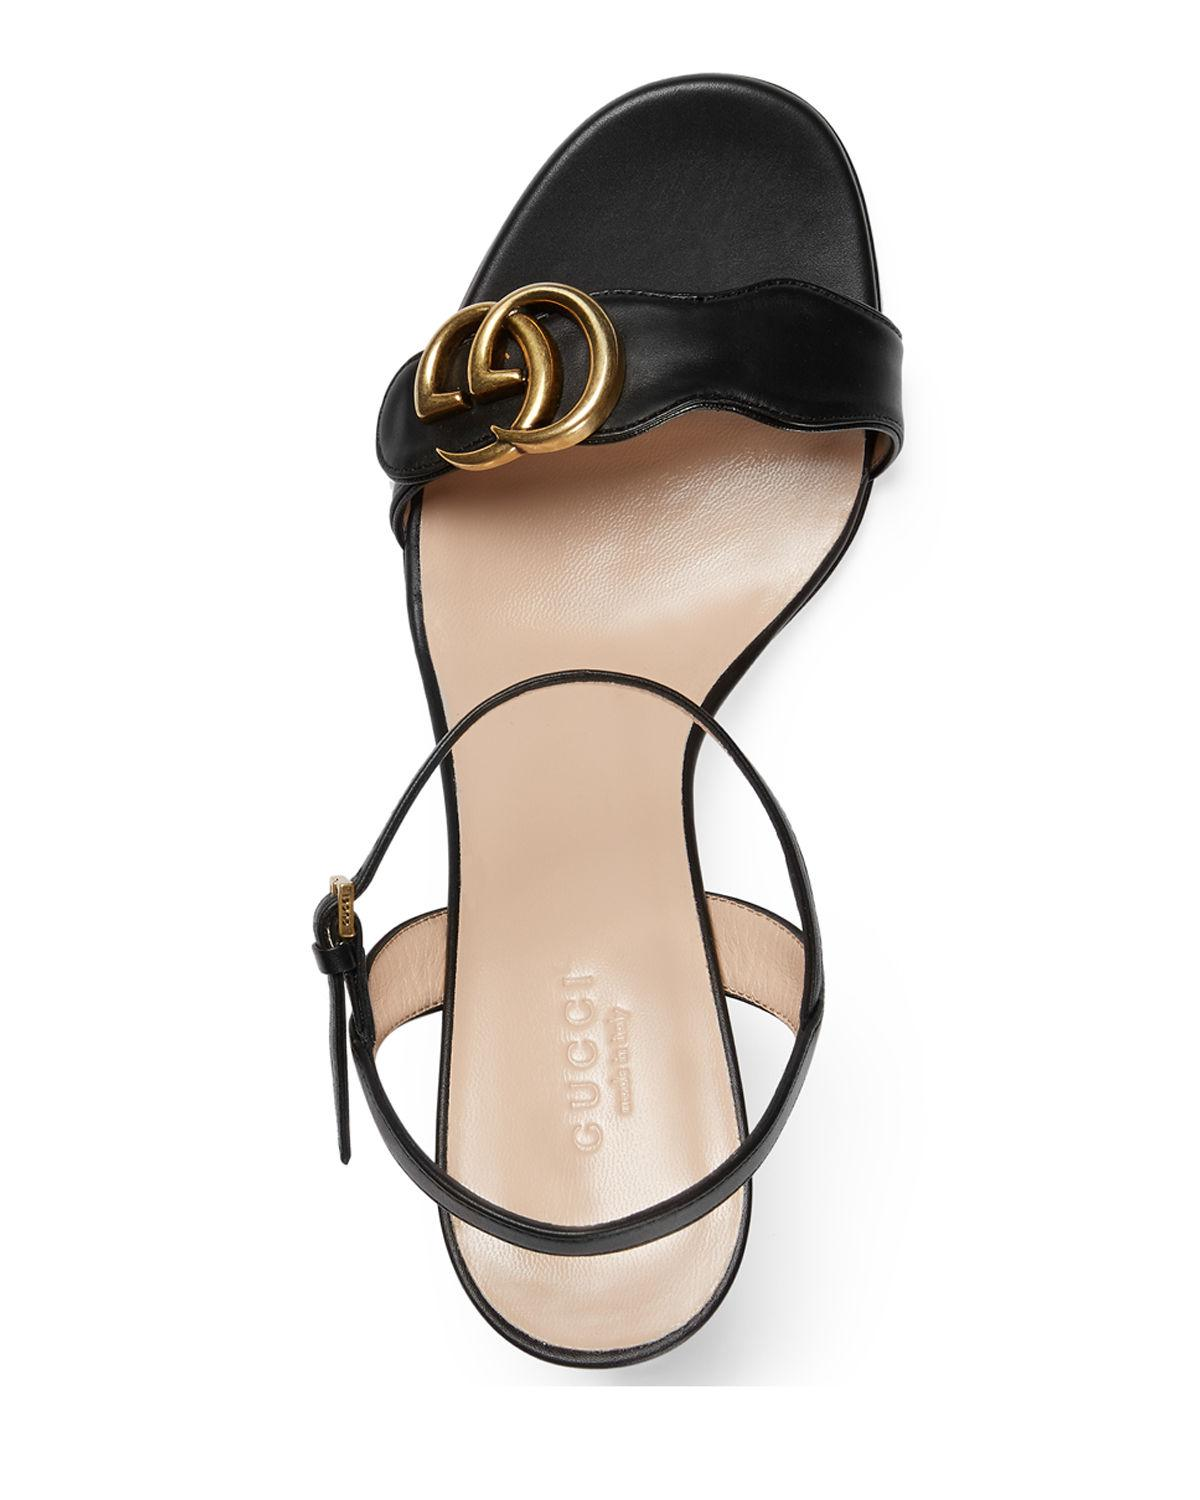 65cd84275 Gucci Marmont Leather GG Block-heel Sandals in Black - Lyst